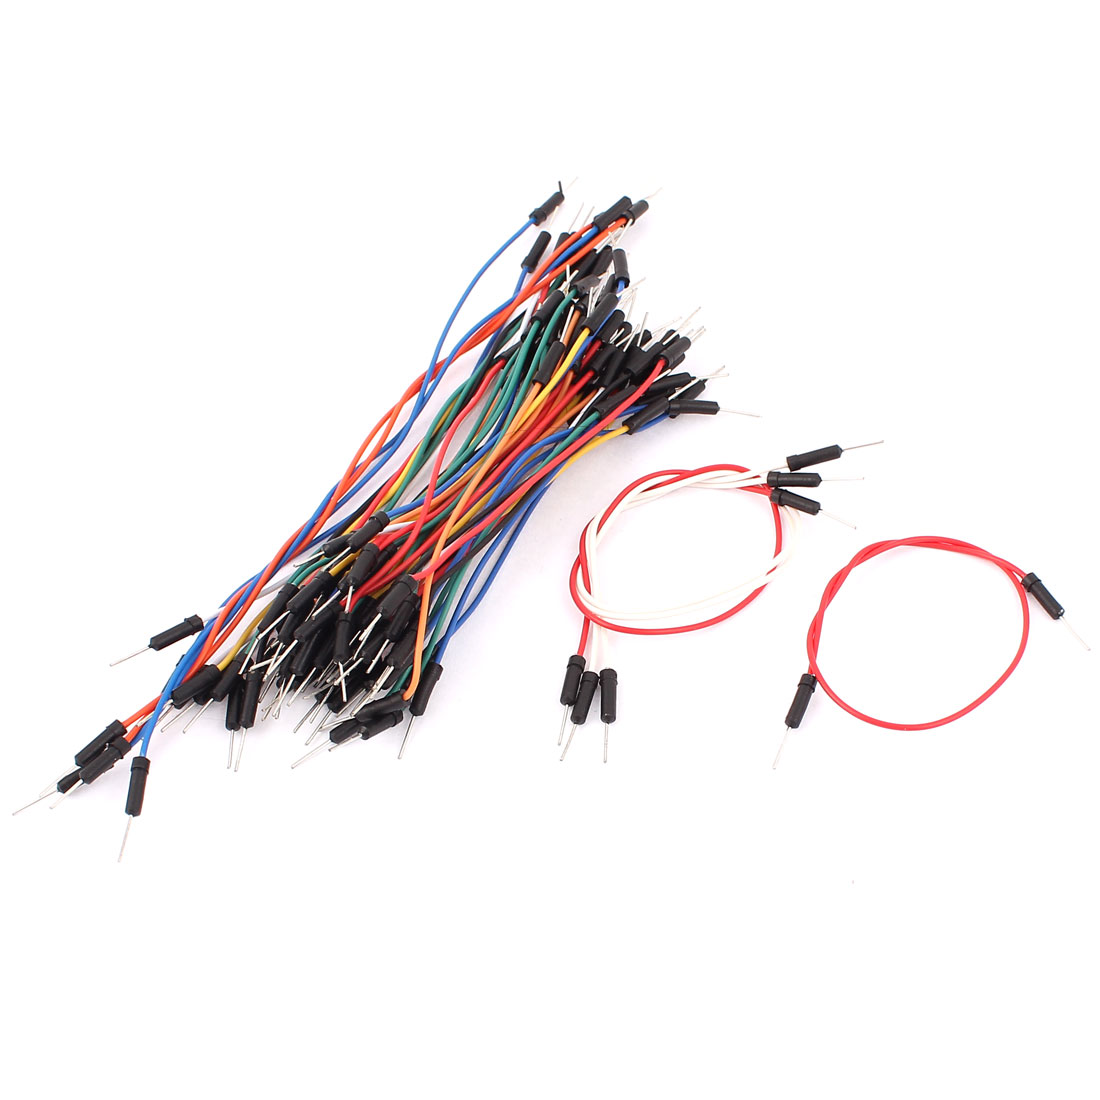 65Pcs Male to Male Solderless Flexible Breadboard Jumper Wire Cable